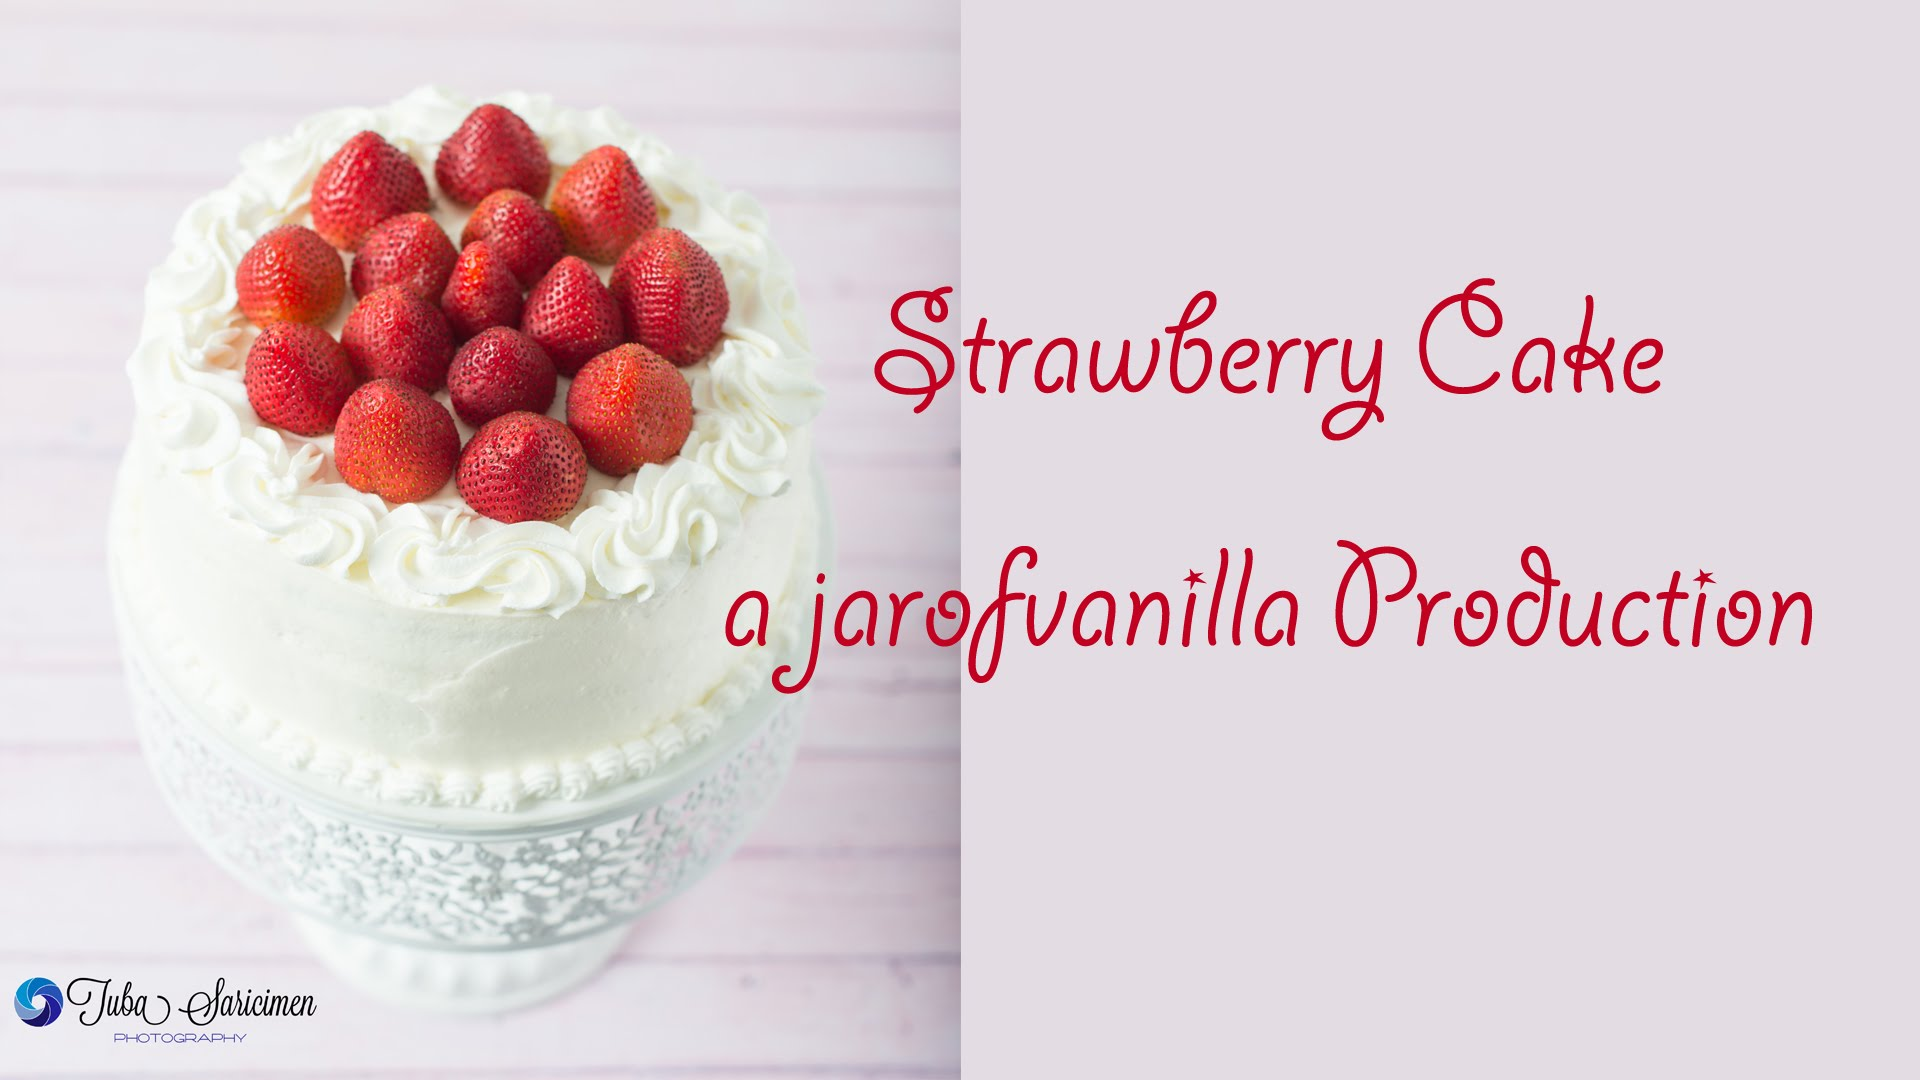 You'll Fall In Love With The Simplicity Of This Strawberry Cake With Cream Cheese Whipped Cream Frosting